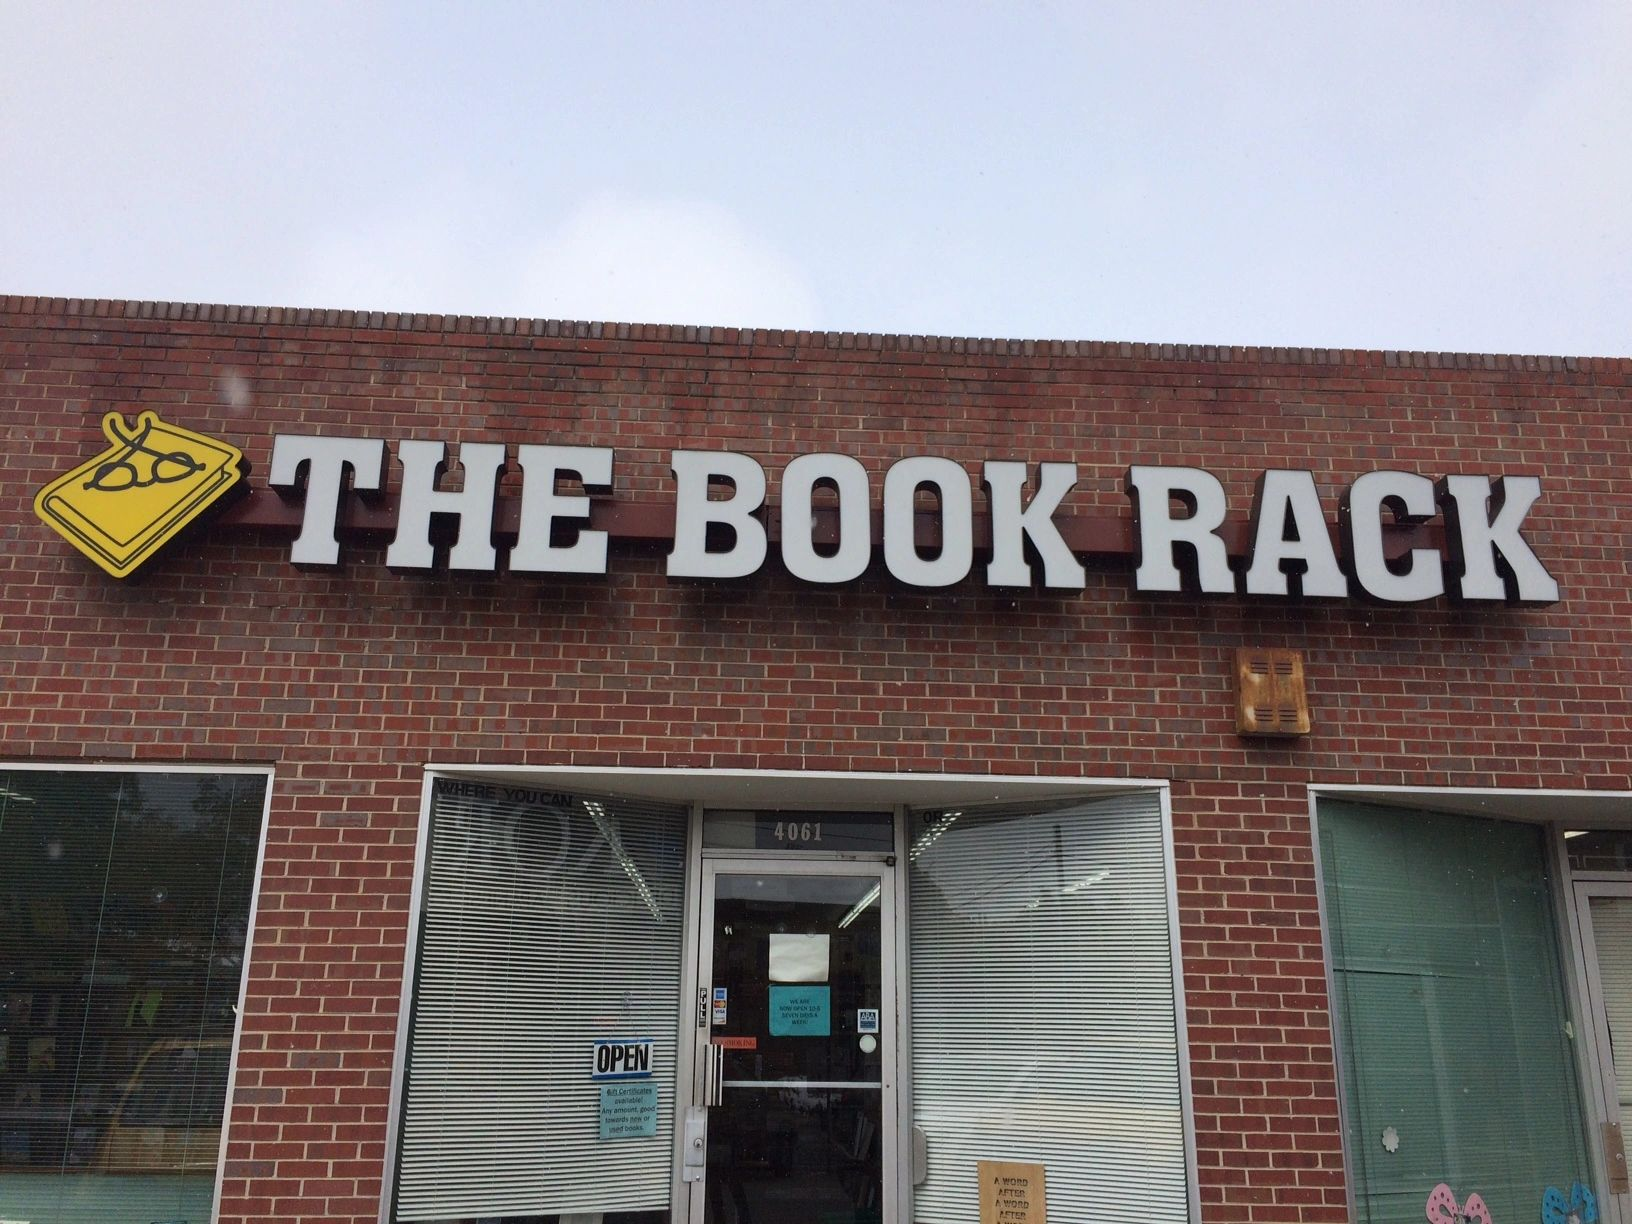 Photo of storefront with sign for The Book Rack